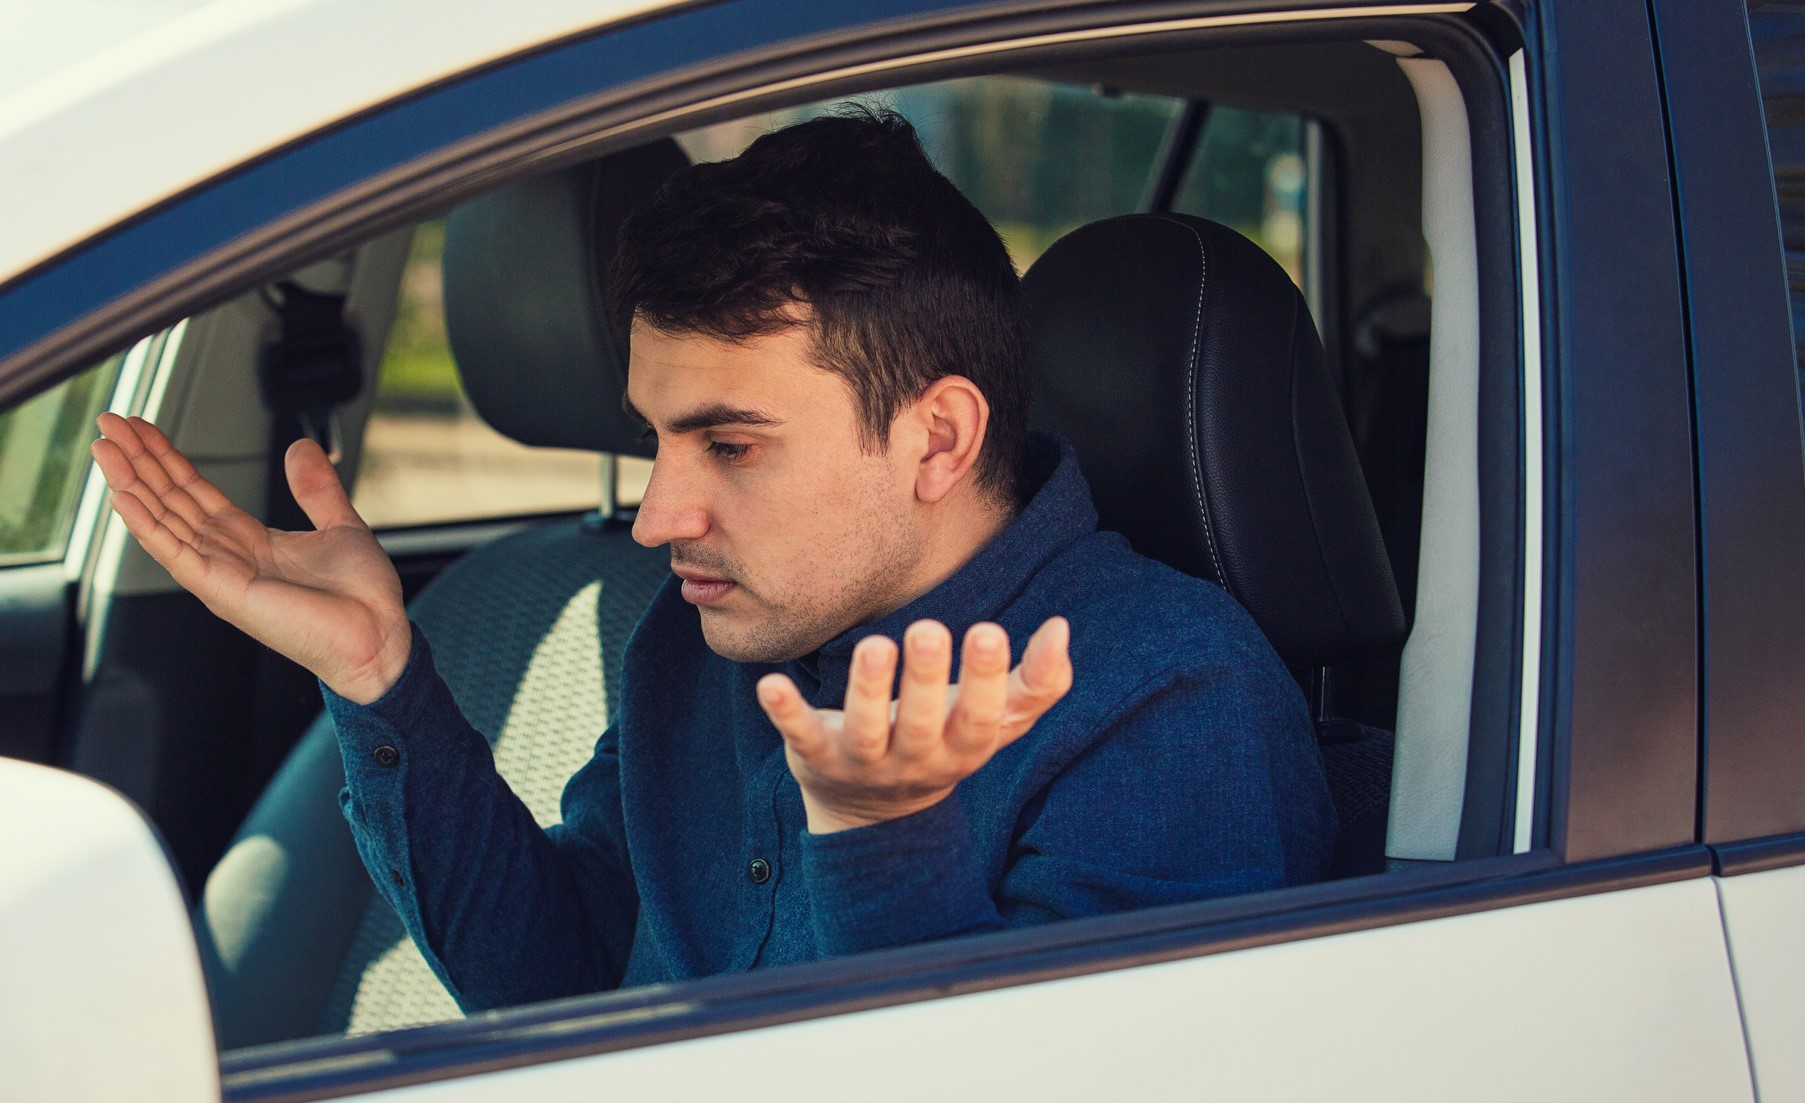 Frustrated male driver in car